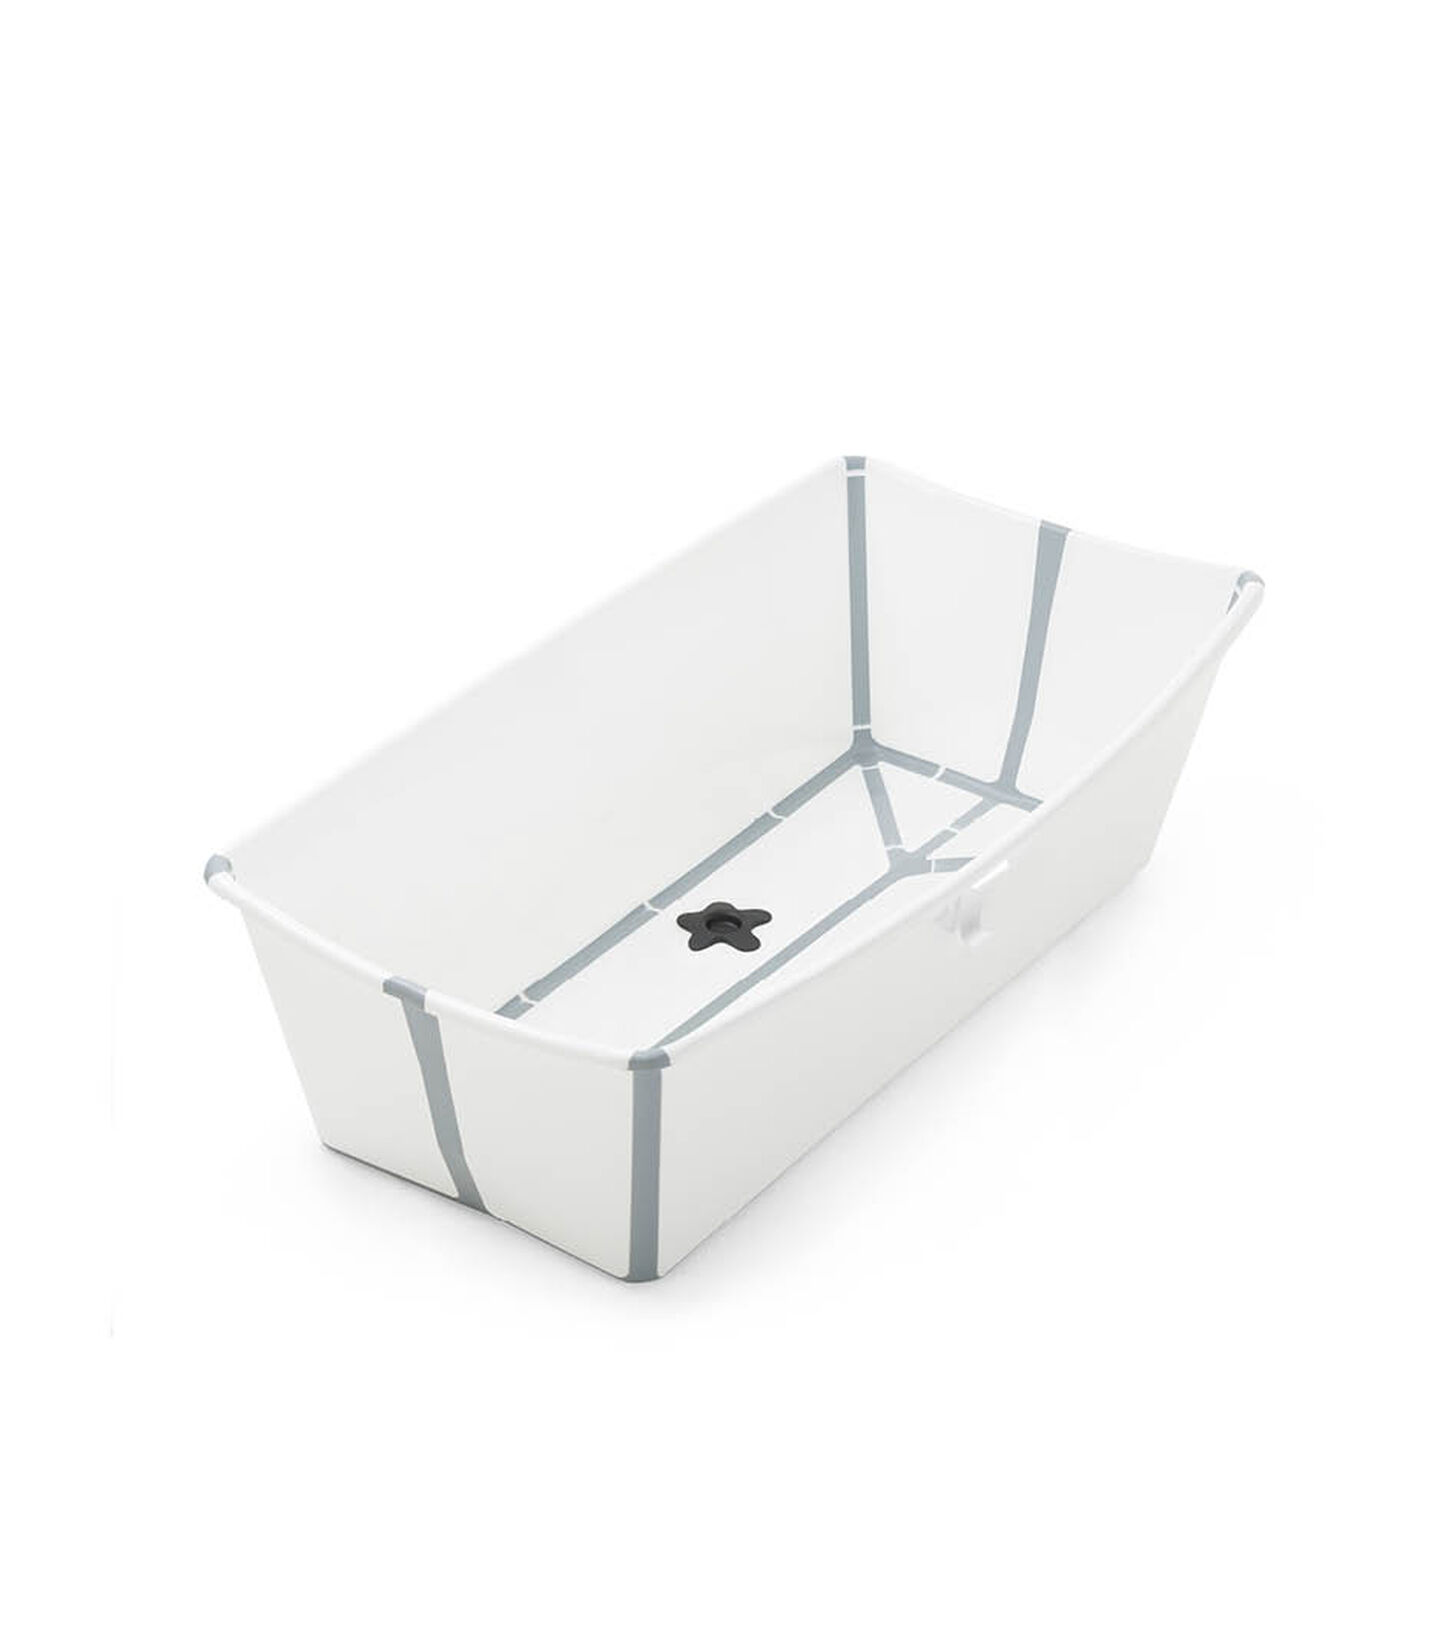 Stokke® Flexi Bath ® Large White, White, mainview view 2